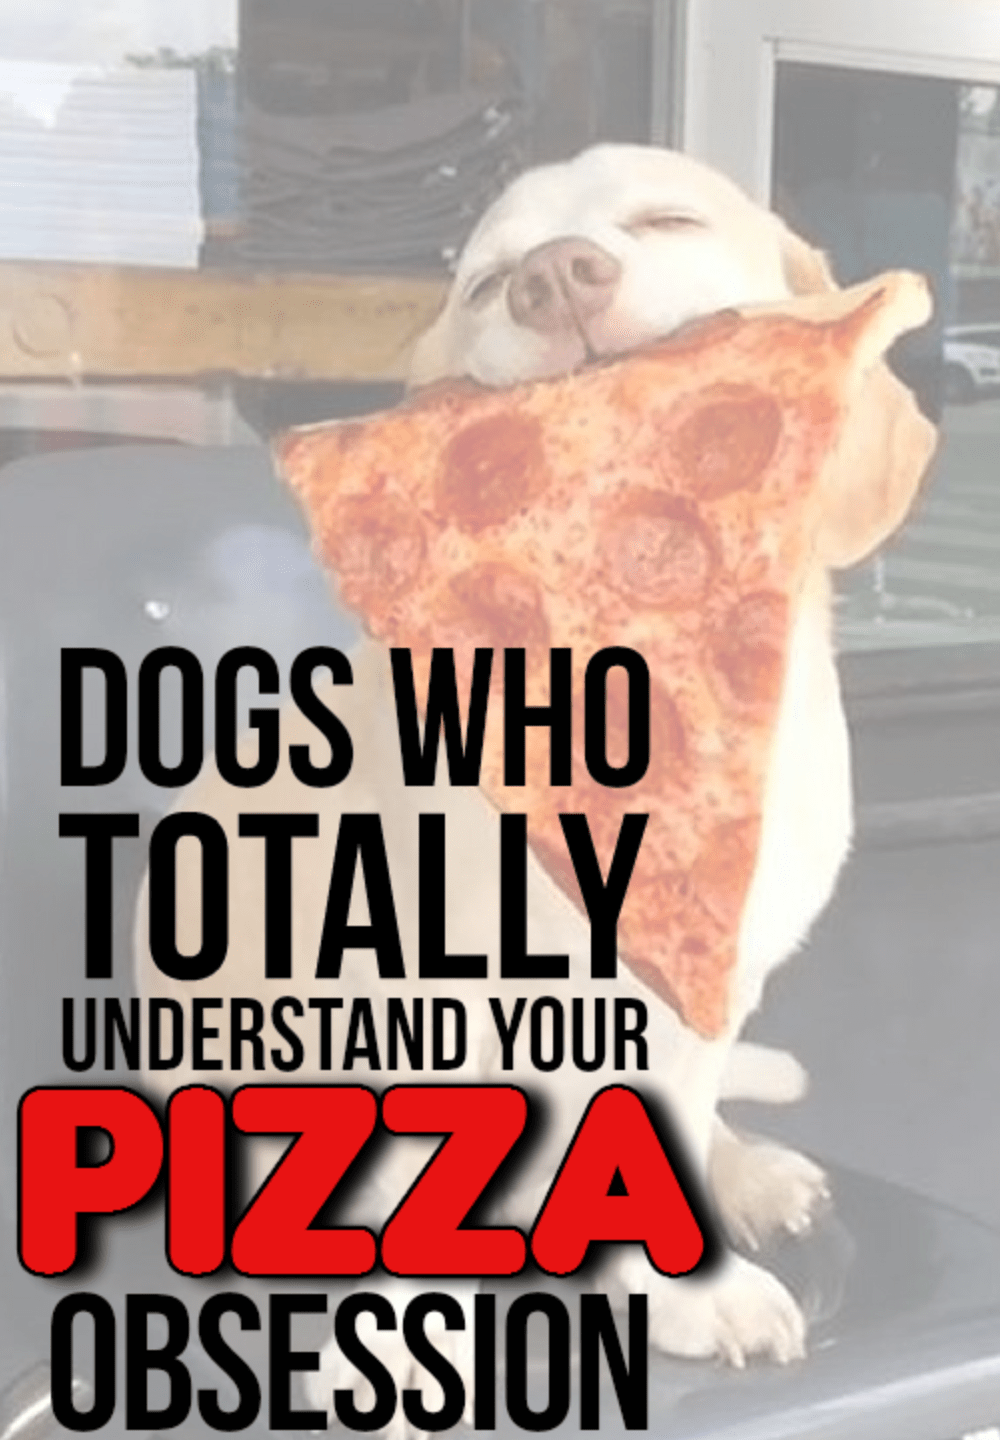 dogs and pizza